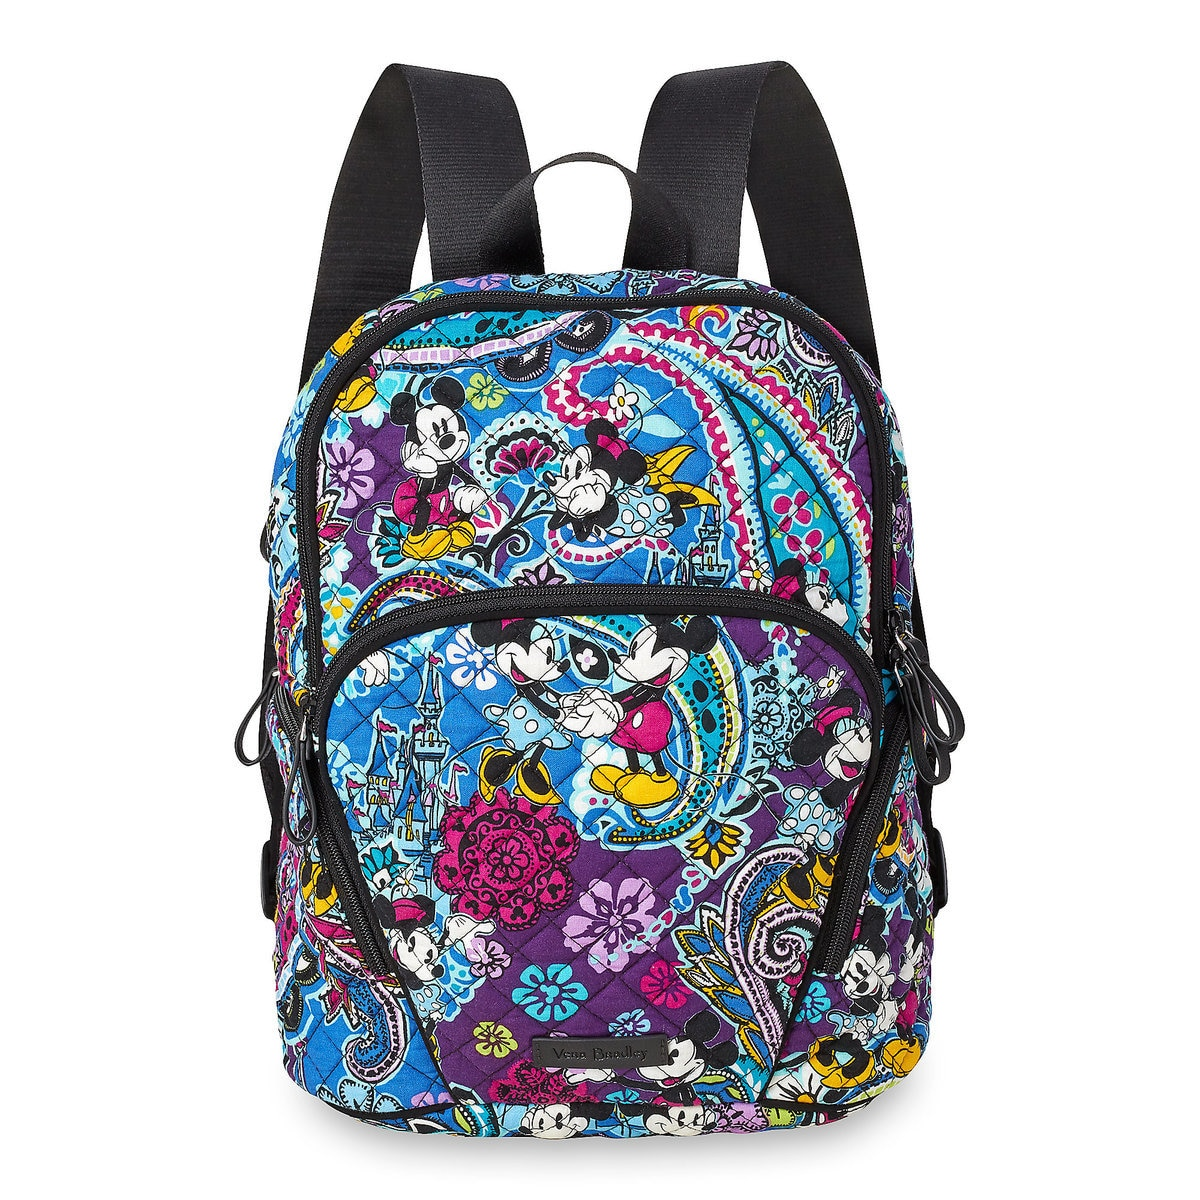 4501f86a7 Product Image of Mickey and Minnie Mouse Paisley Hadley Backpack by Vera  Bradley # 1